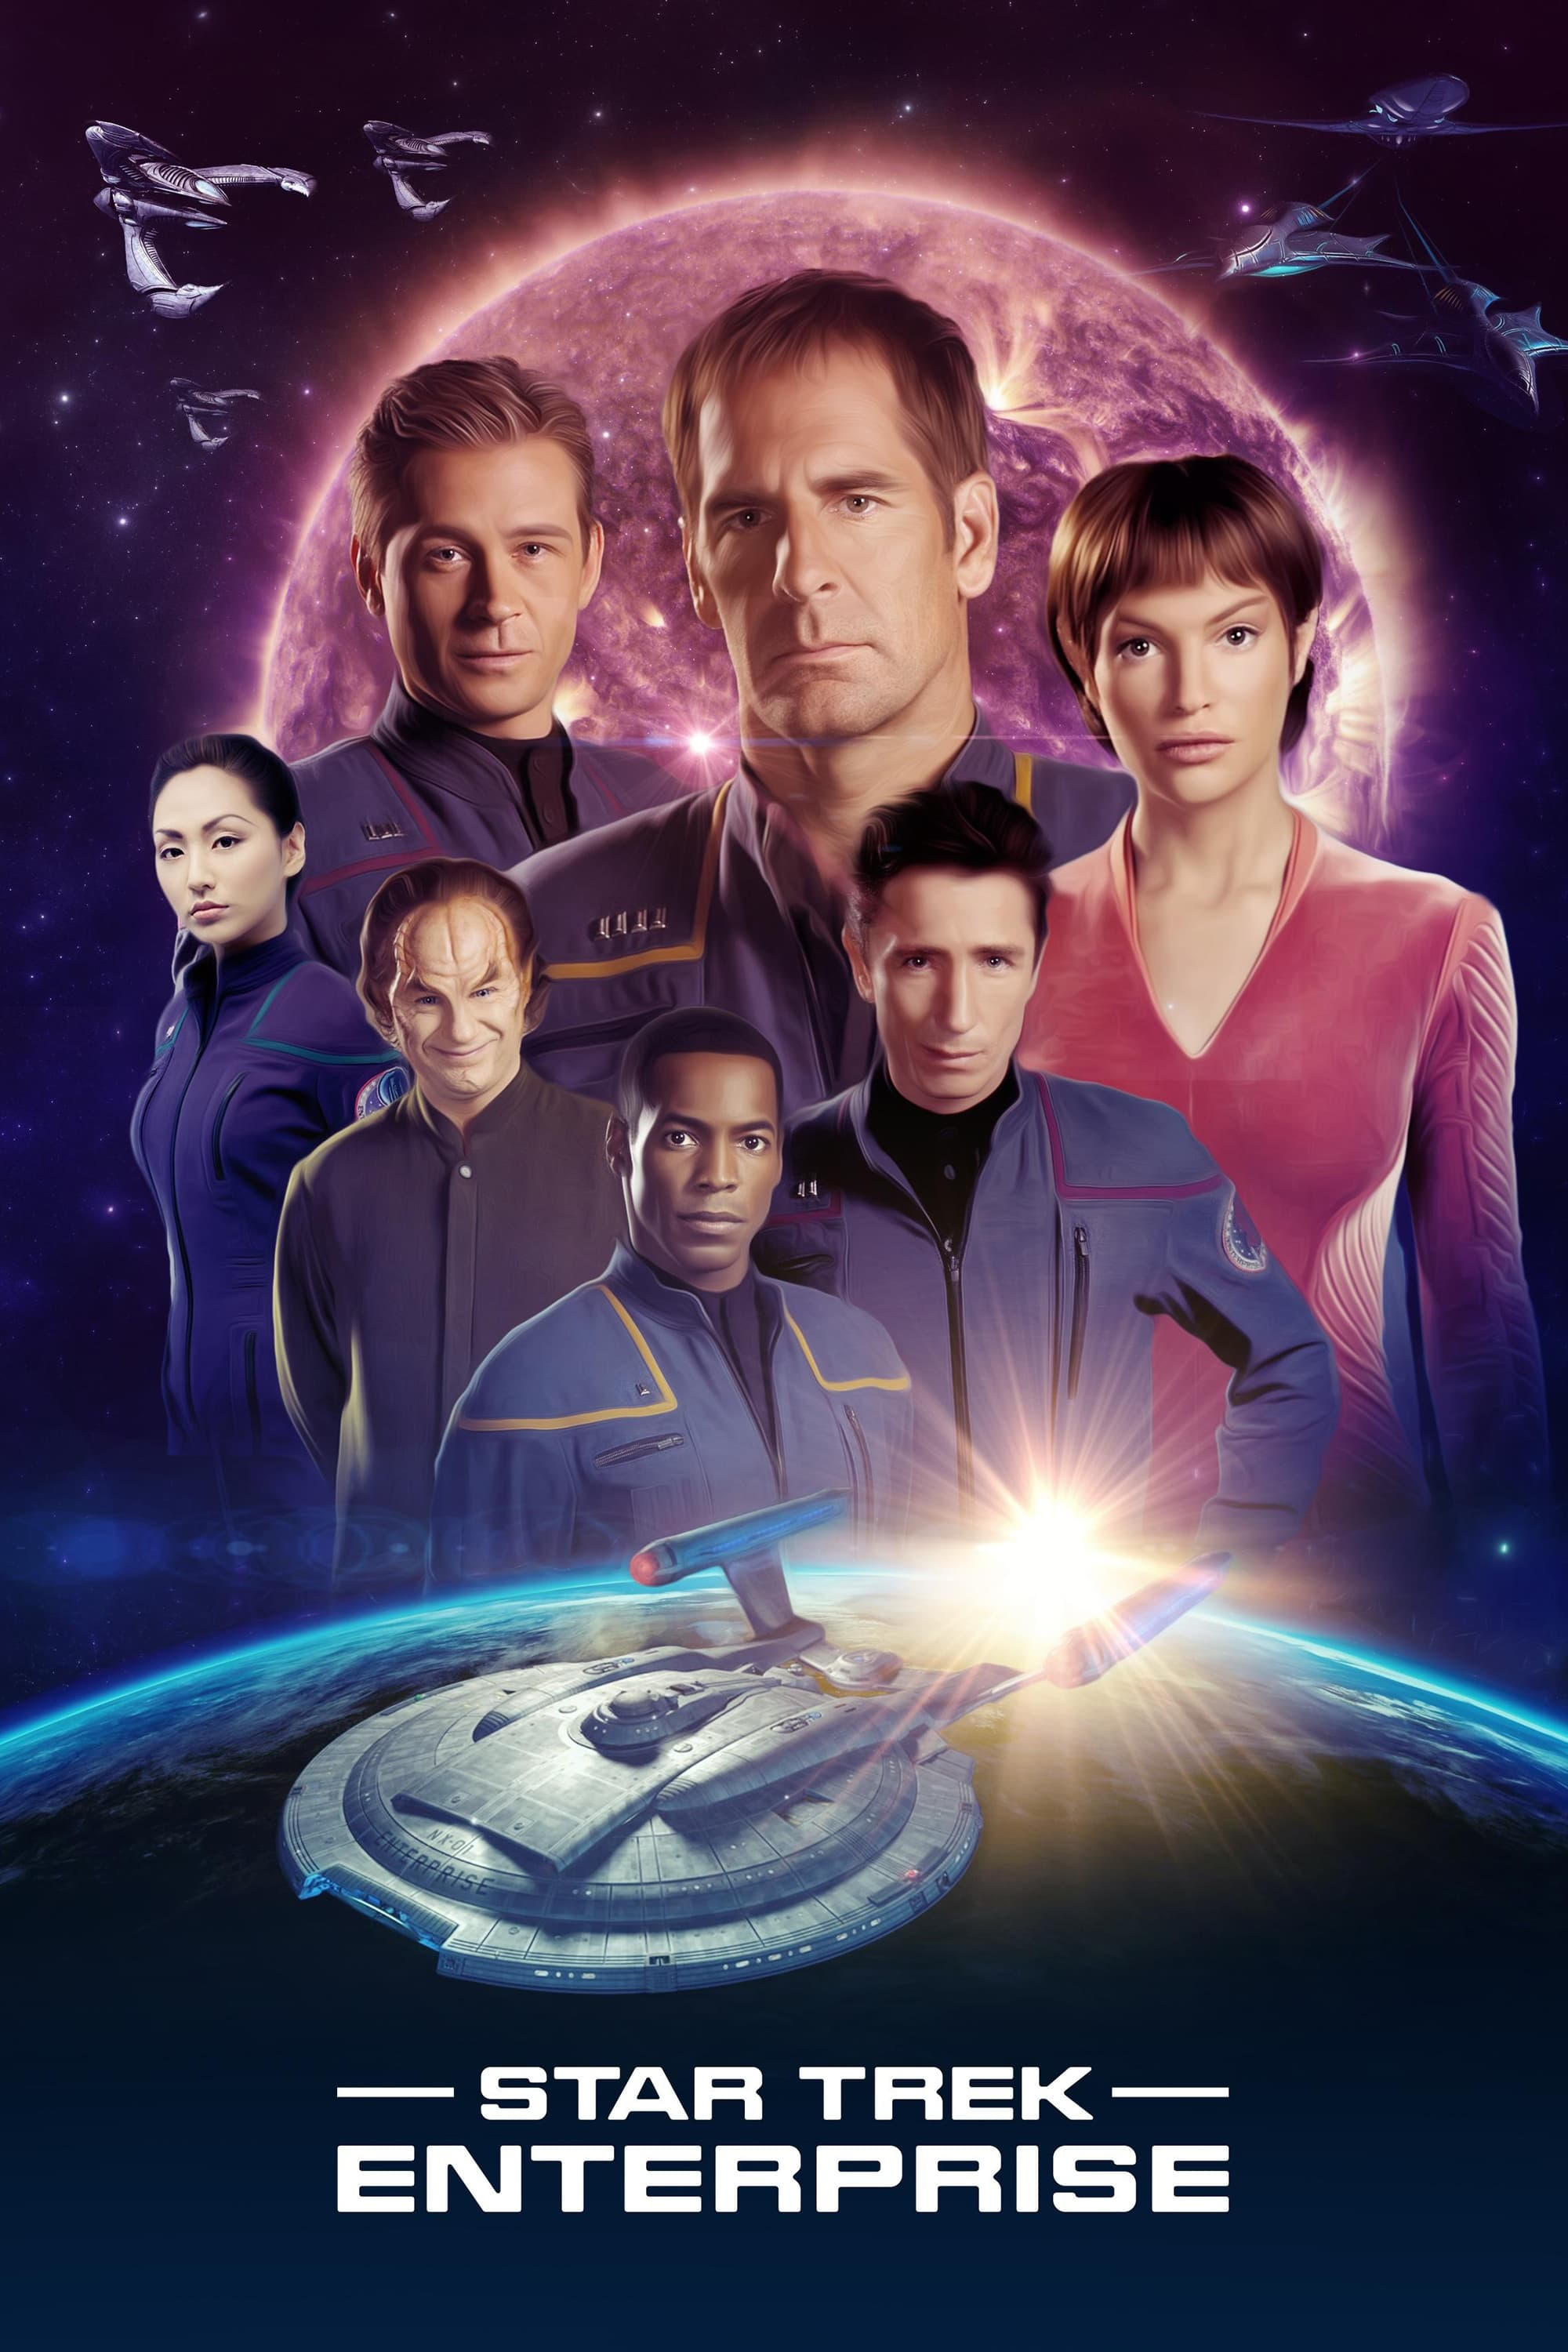 Star Trek: Enterprise' />